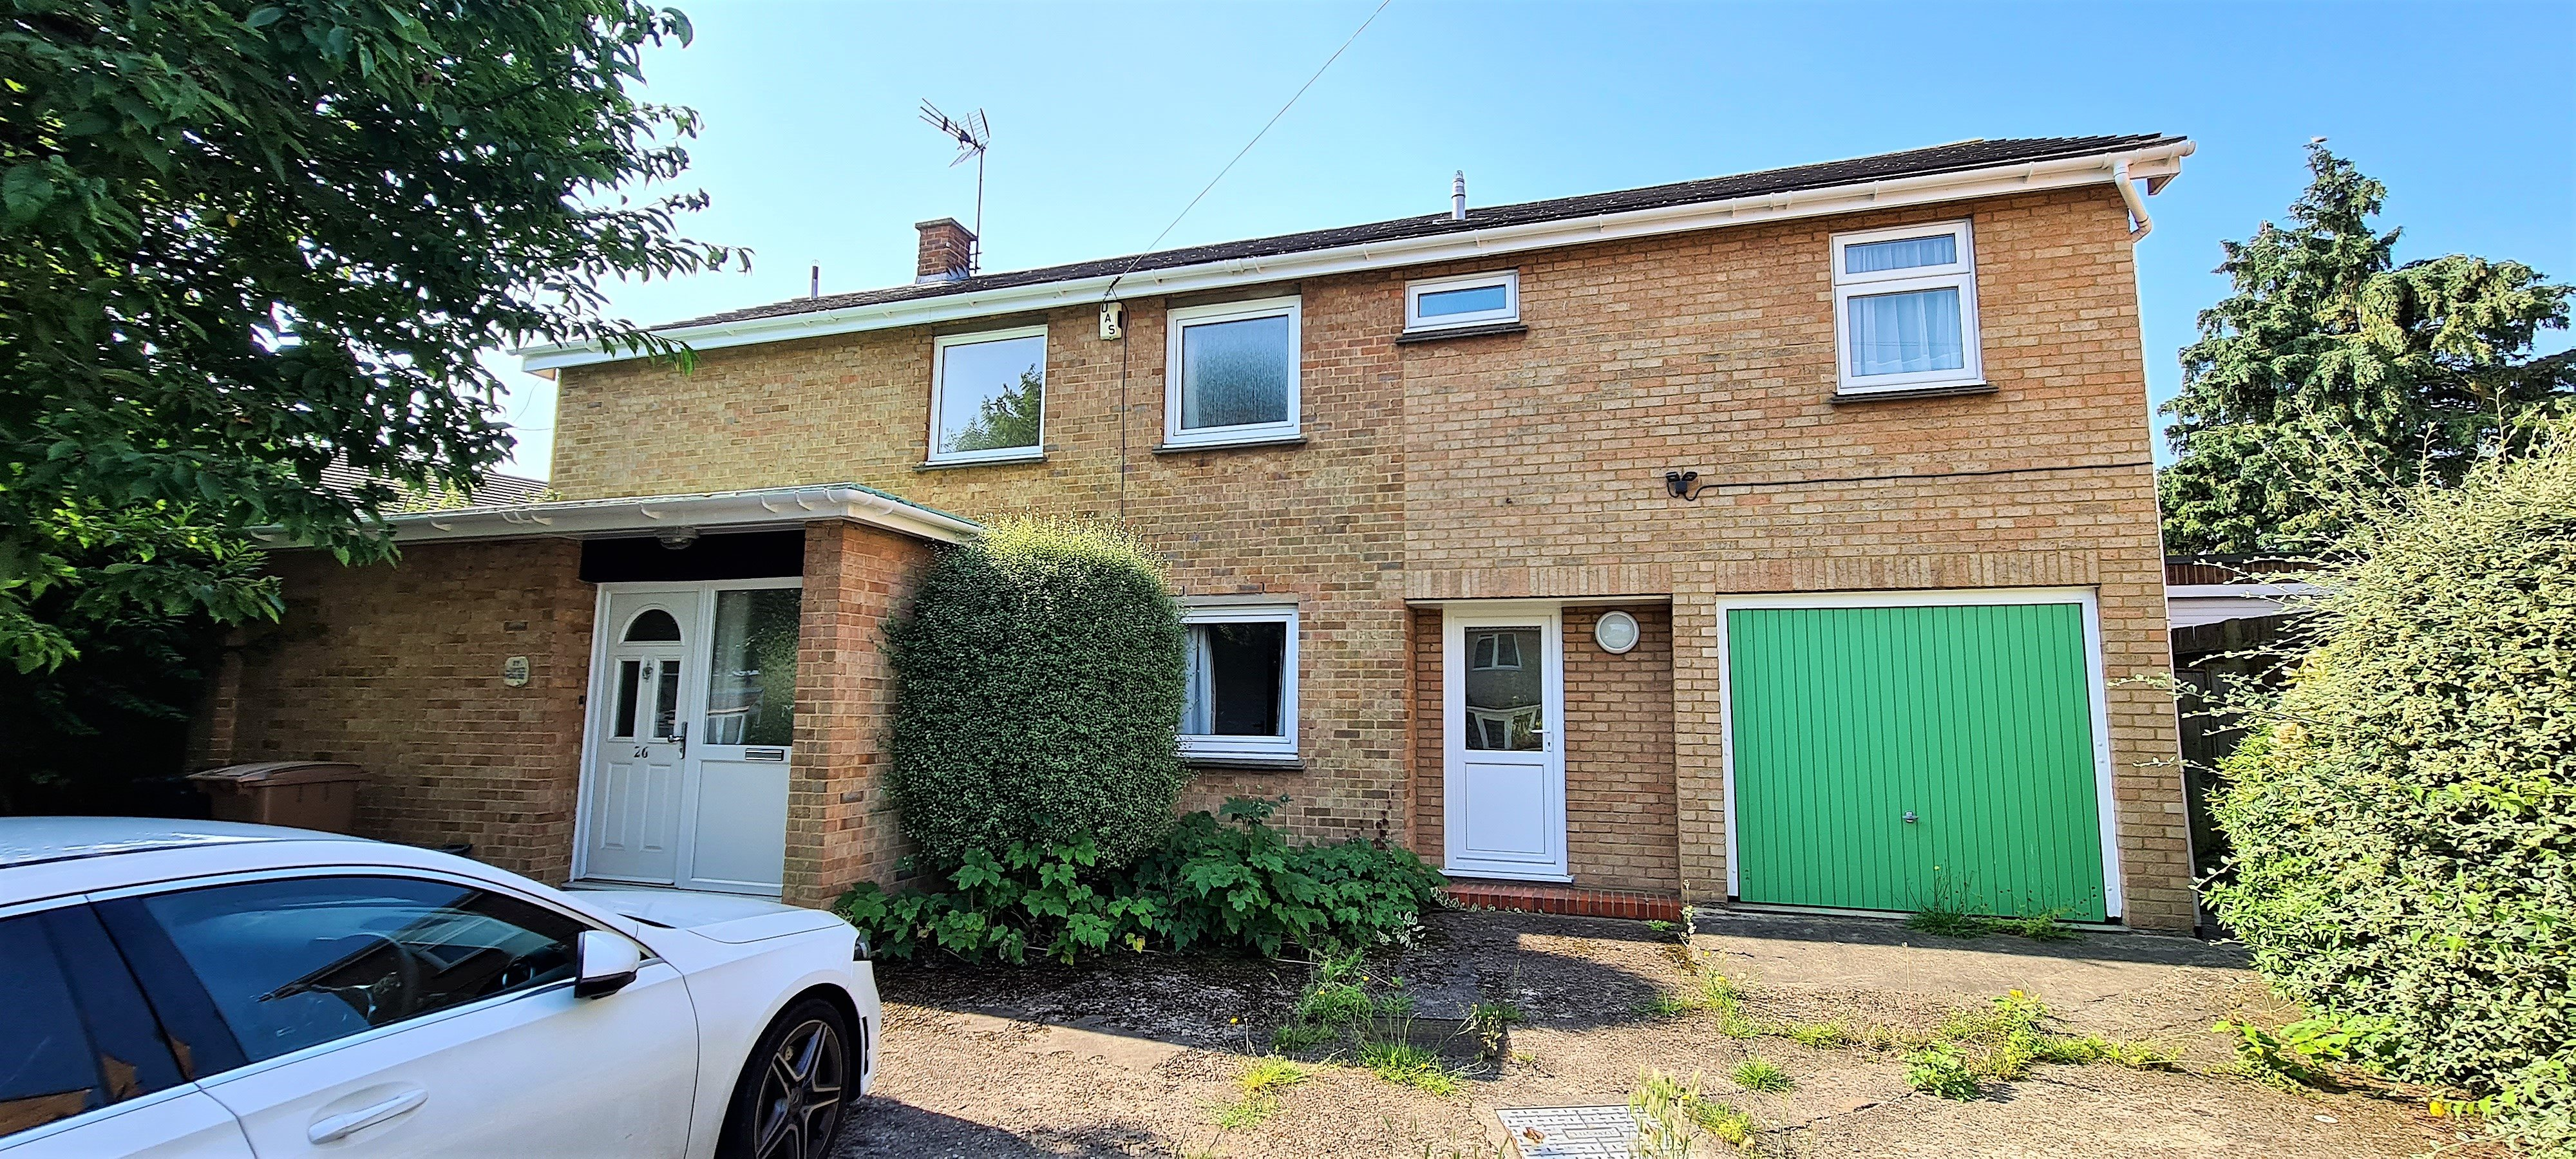 5 bed detached house to rent in Lewis Drive, Chelmsford 0